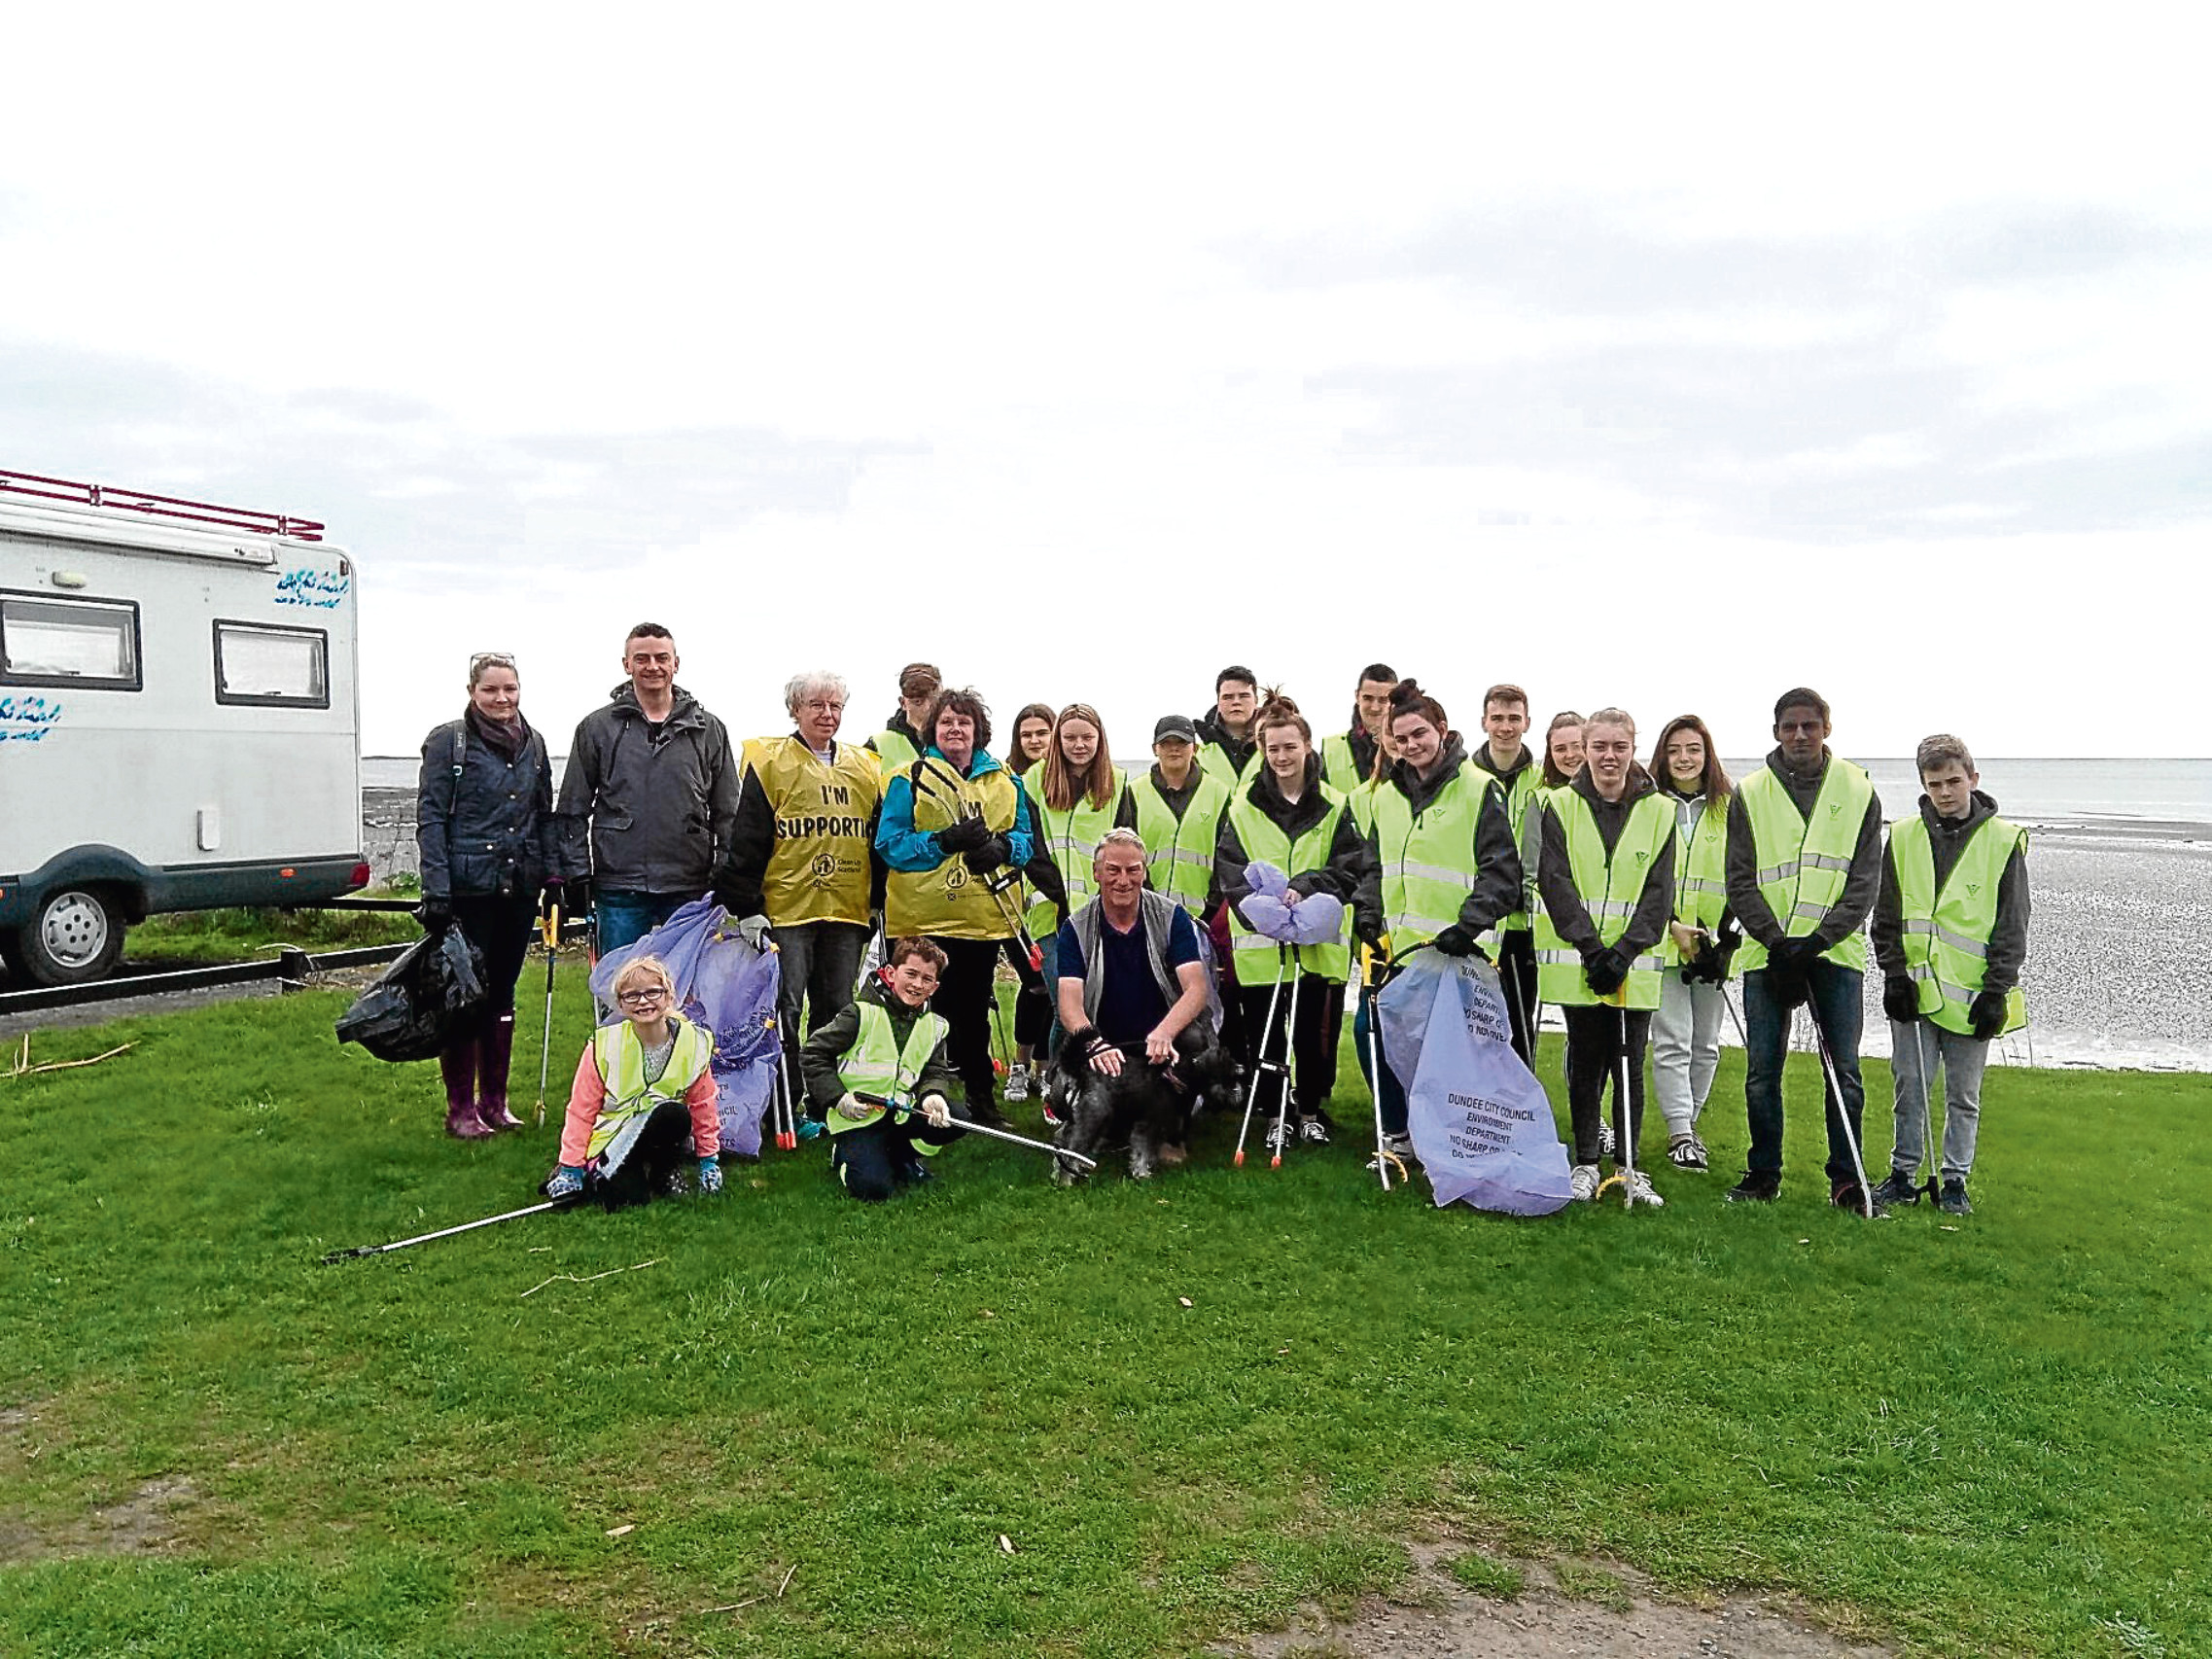 police scotladn youth volunteers and members of the public take part in a litter pick at Broughty Ferry beach